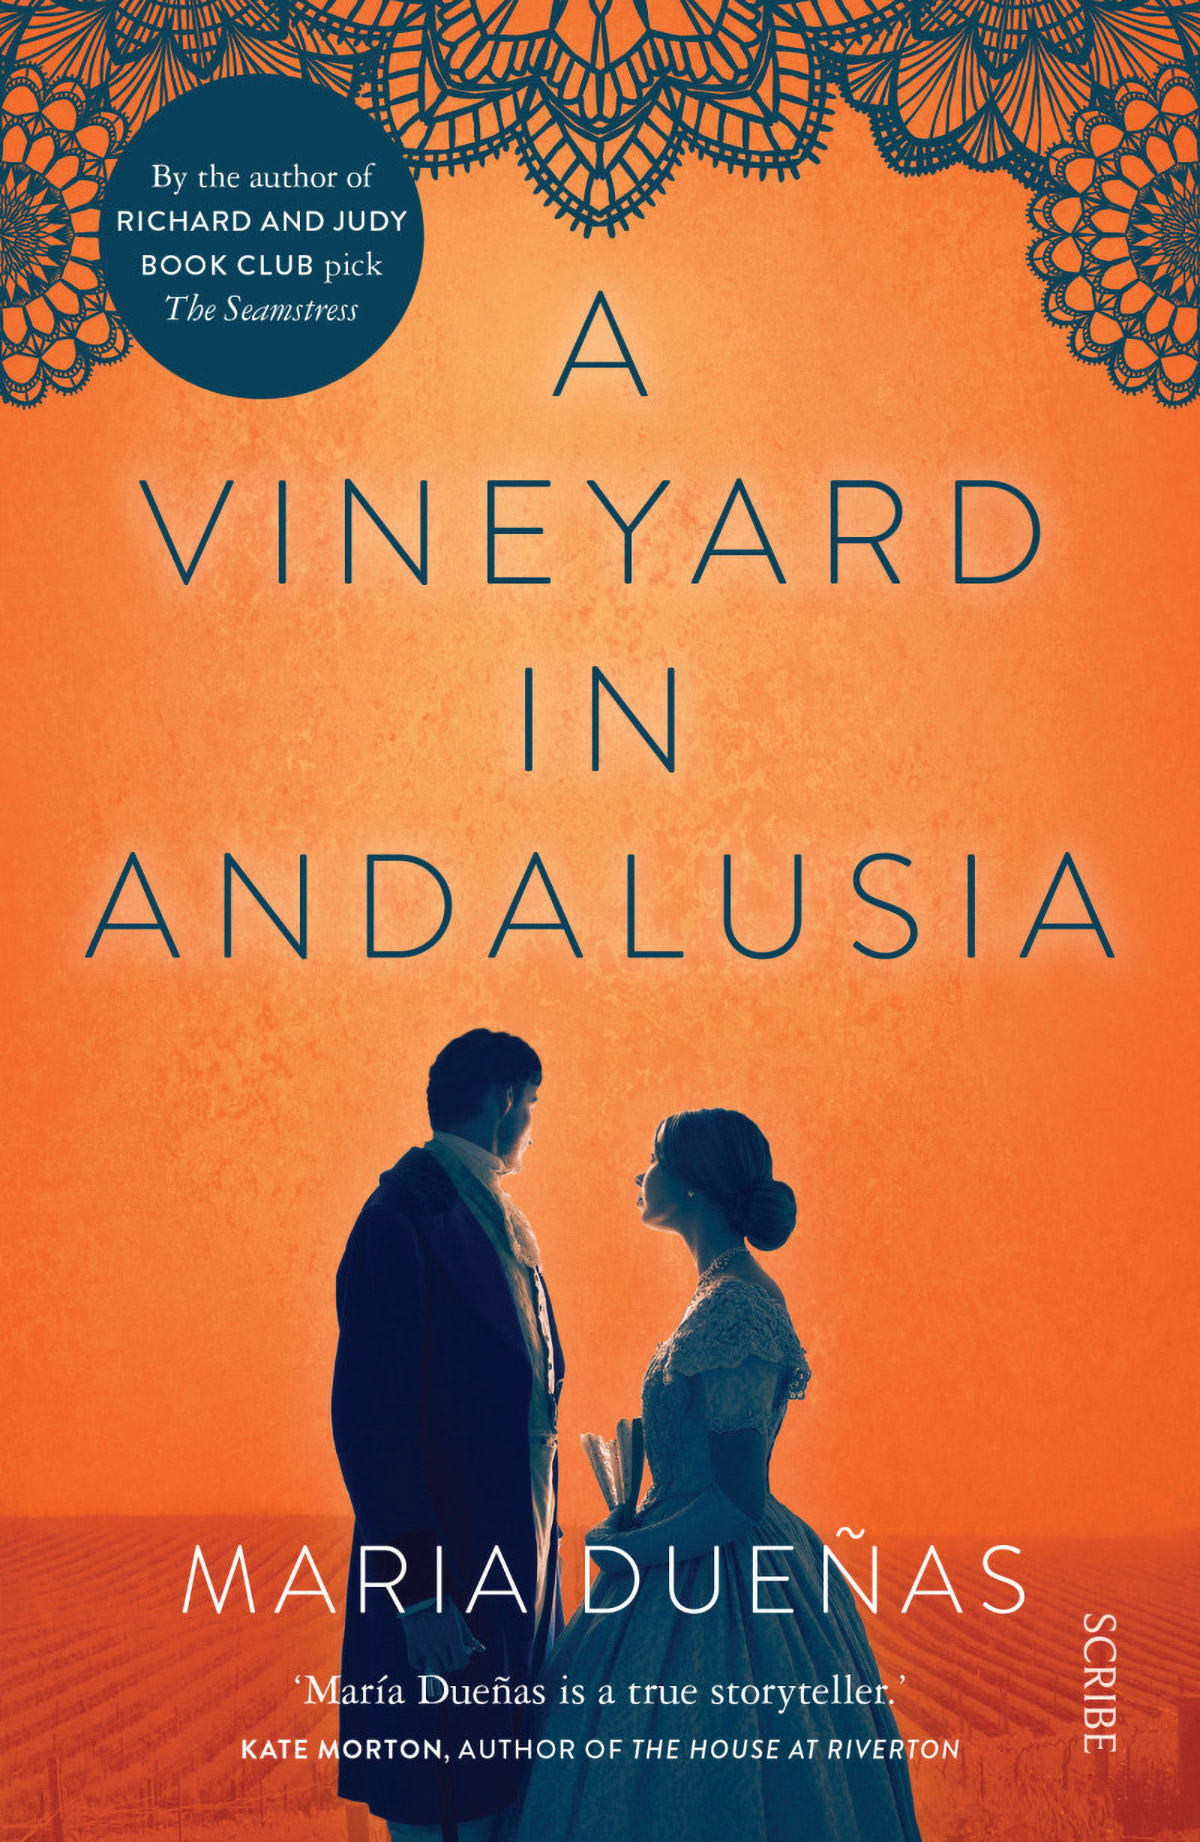 A vineyard in Andalucia cover